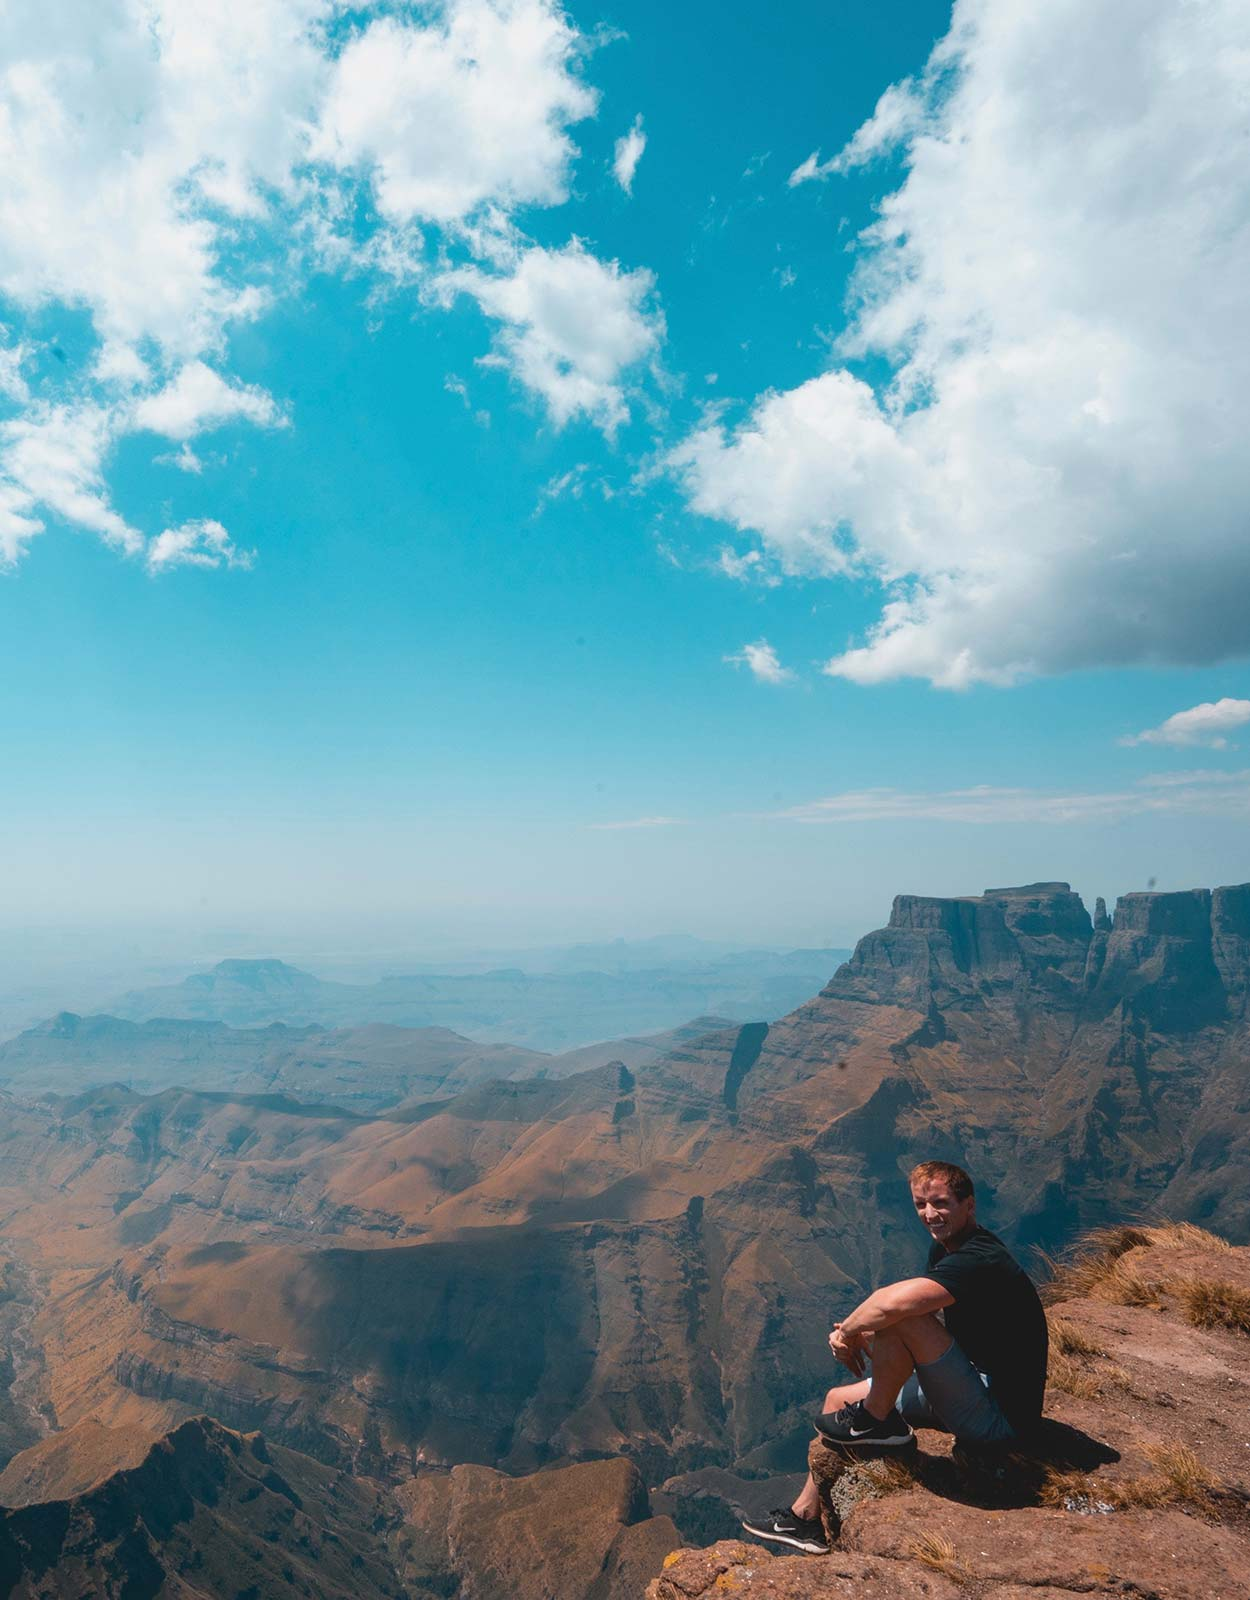 David Simpson at the Ampitheater in Lesotho, Africa. South Africa reflection